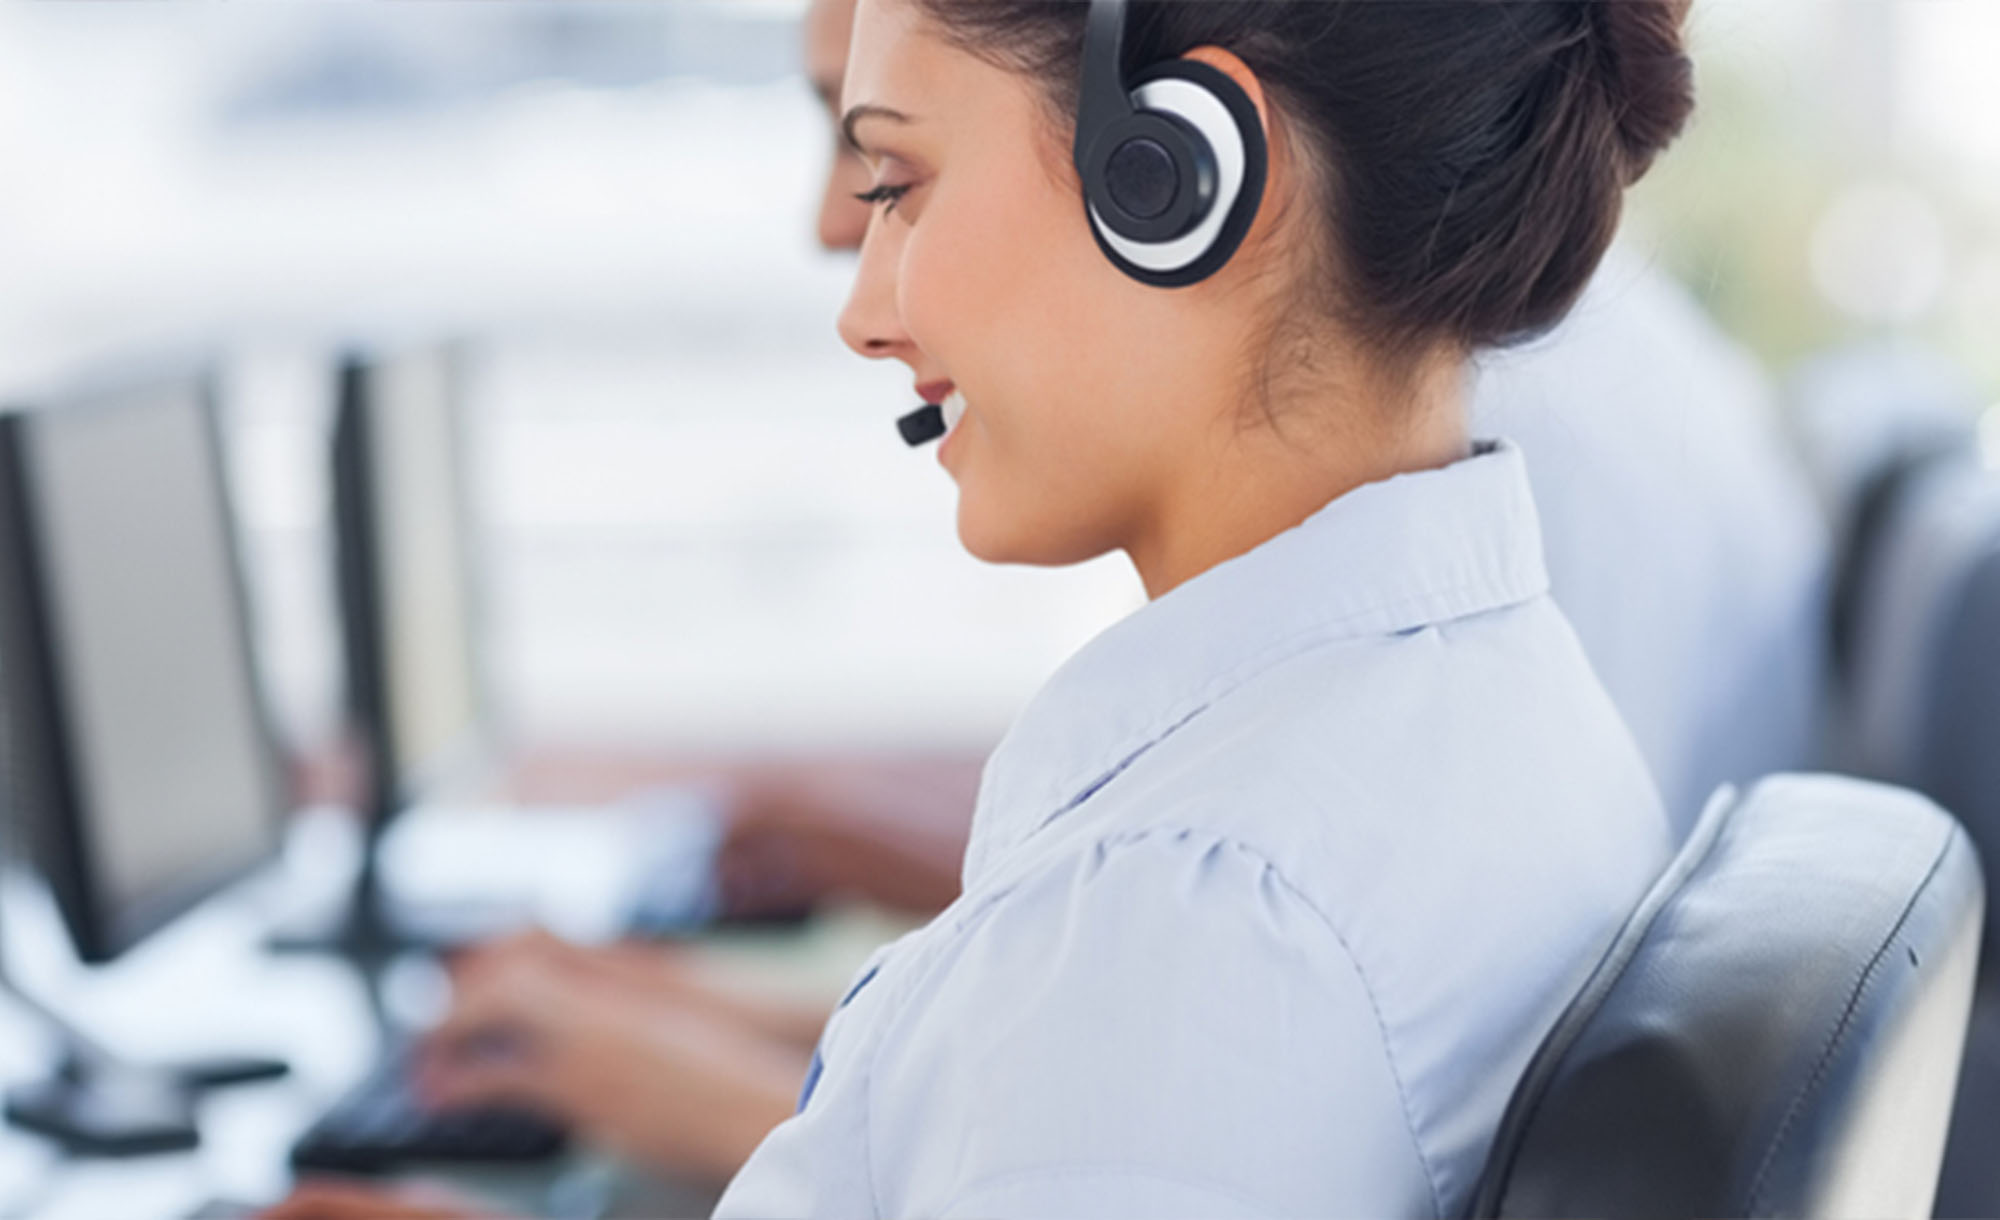 nationwide service support